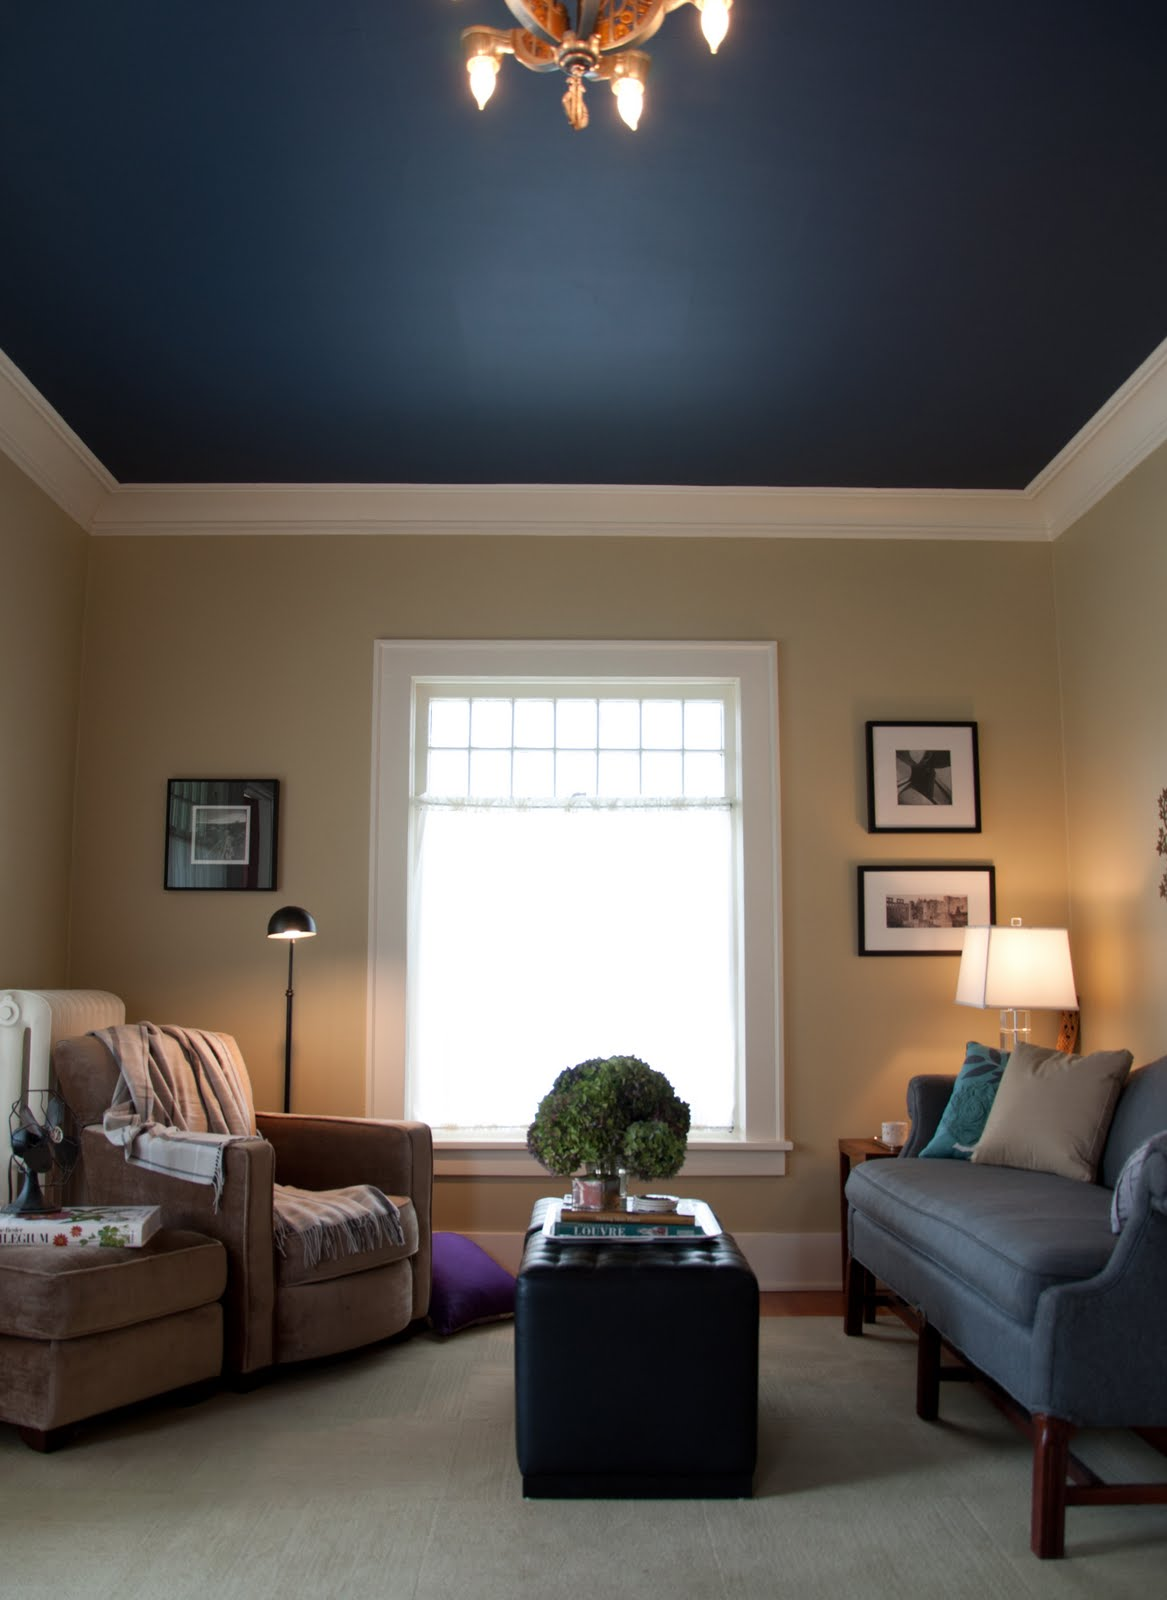 Inform inspire interiors ballard bungalow before after - Ceiling paint color ideas ...